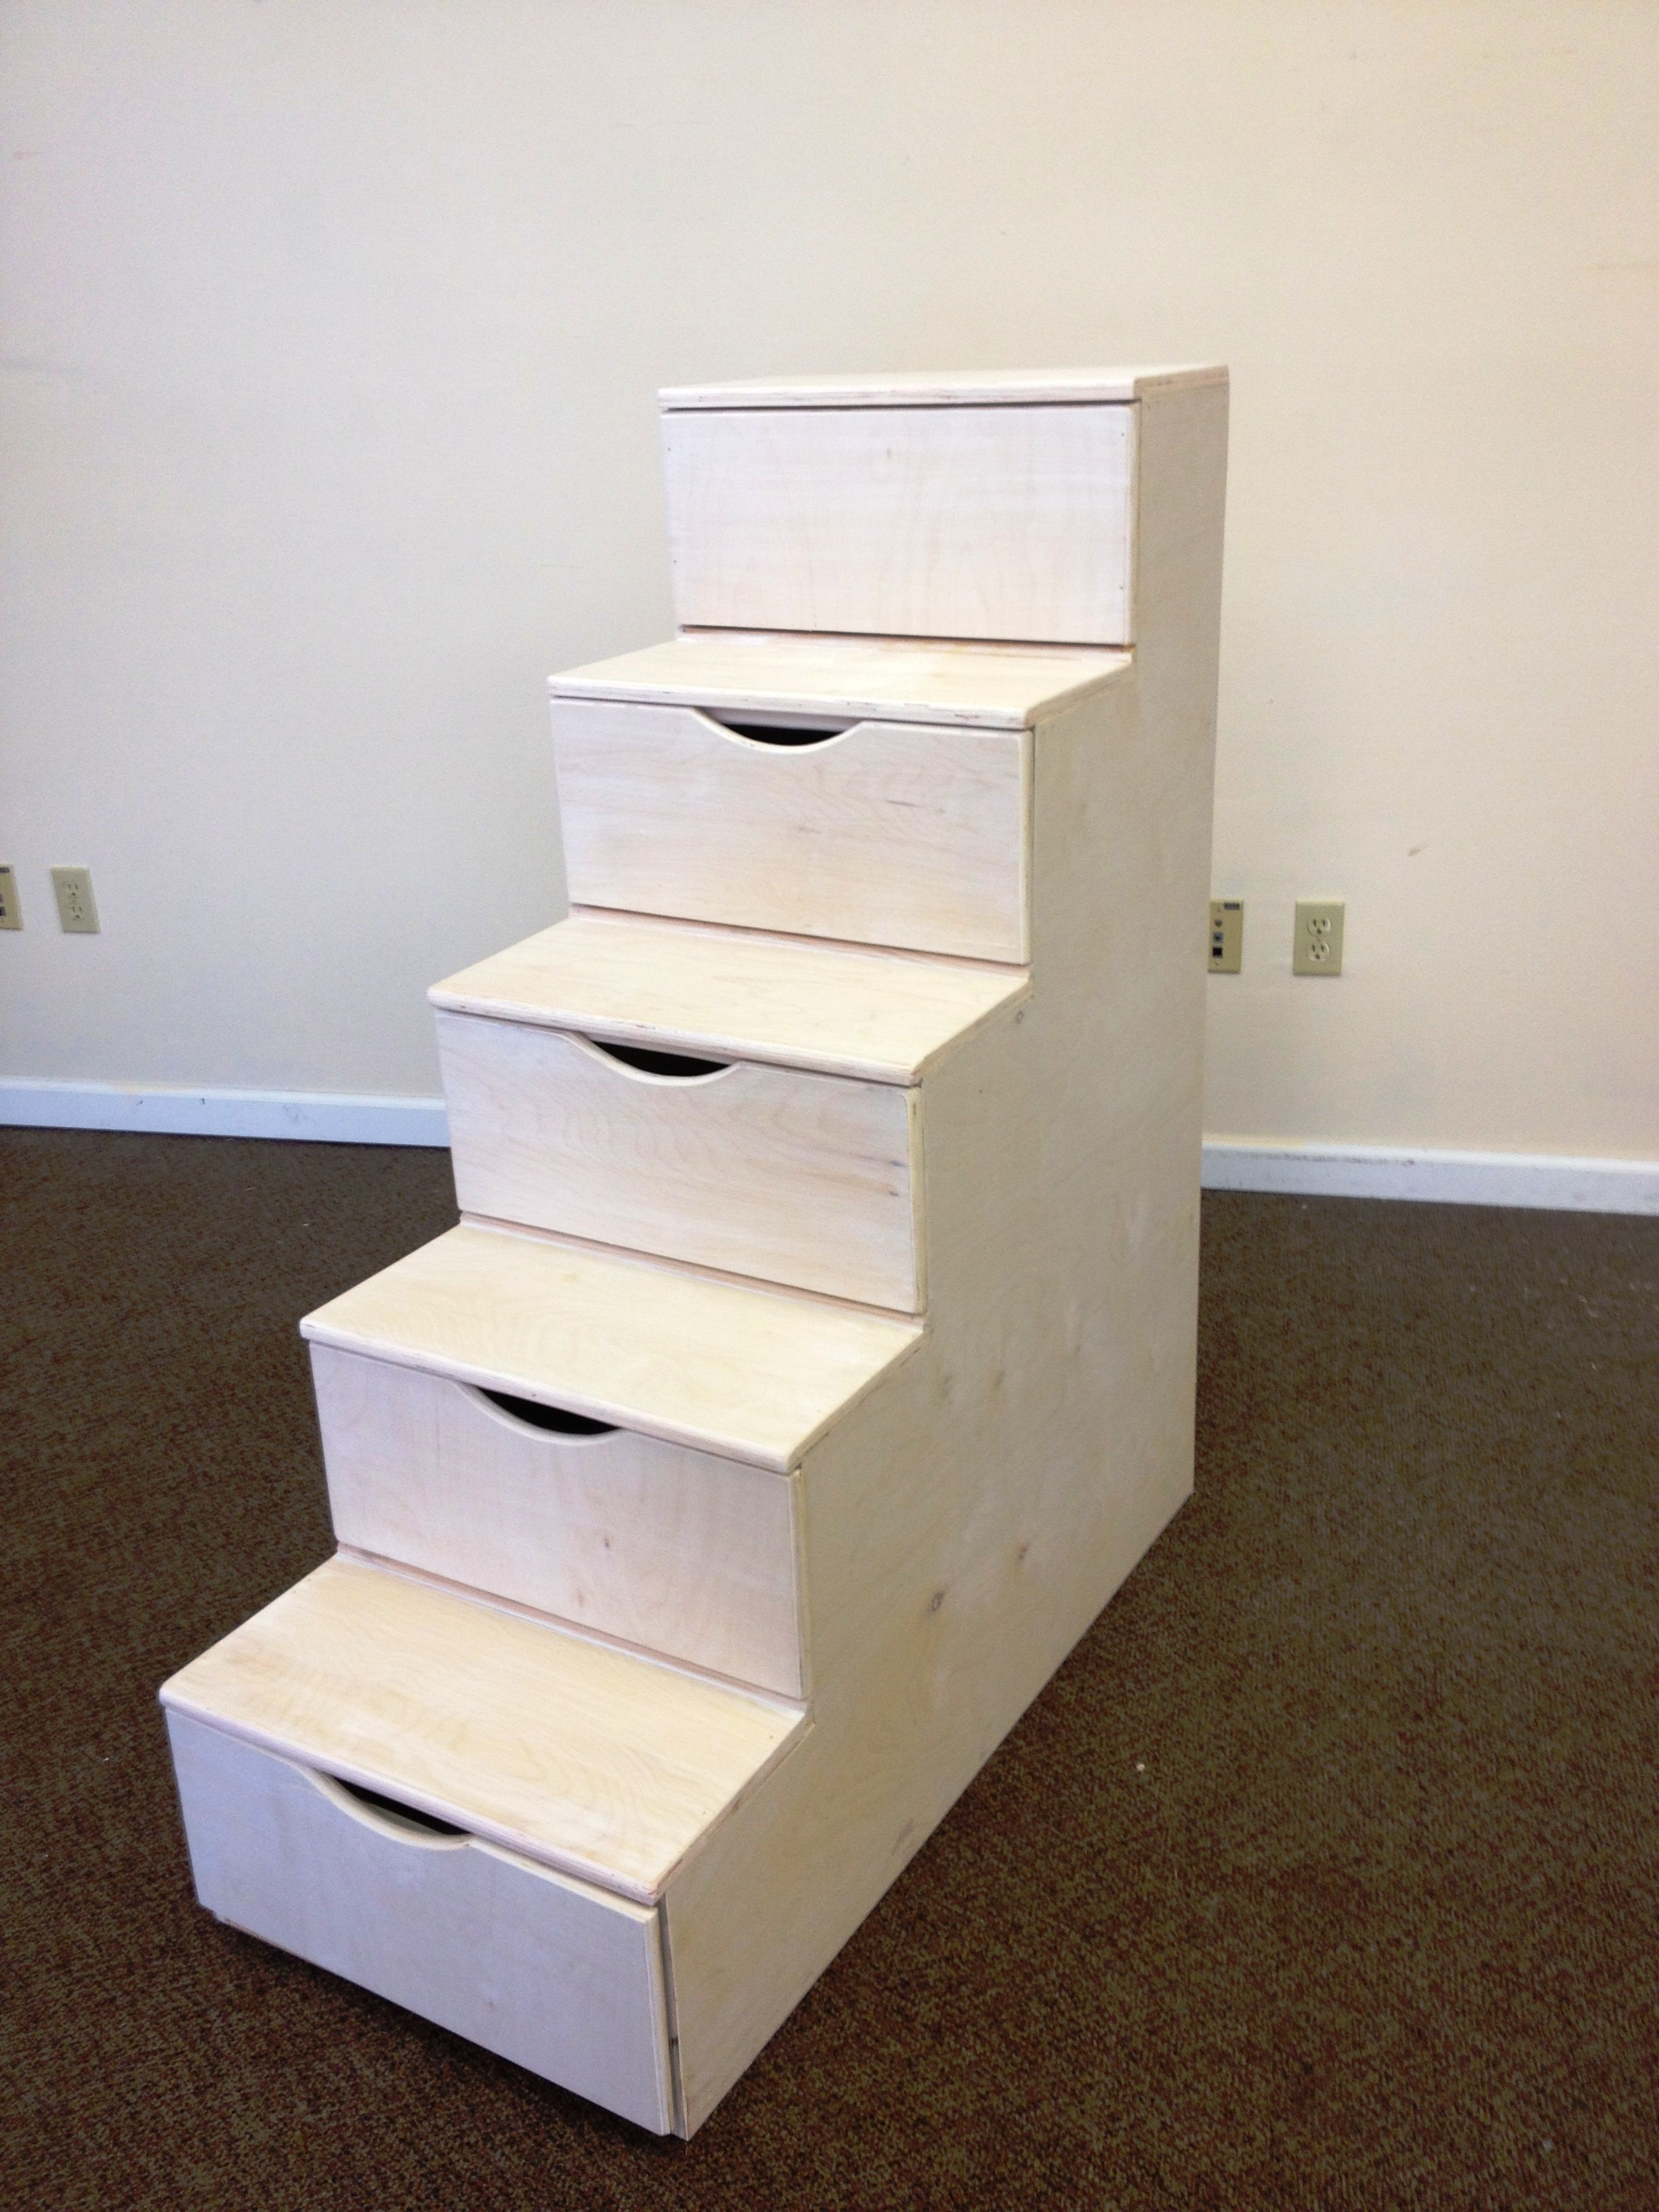 Bunk Bed Stairs Plans Bunk Bed With Stairs Plans Kids Pinterest Drawers Stair